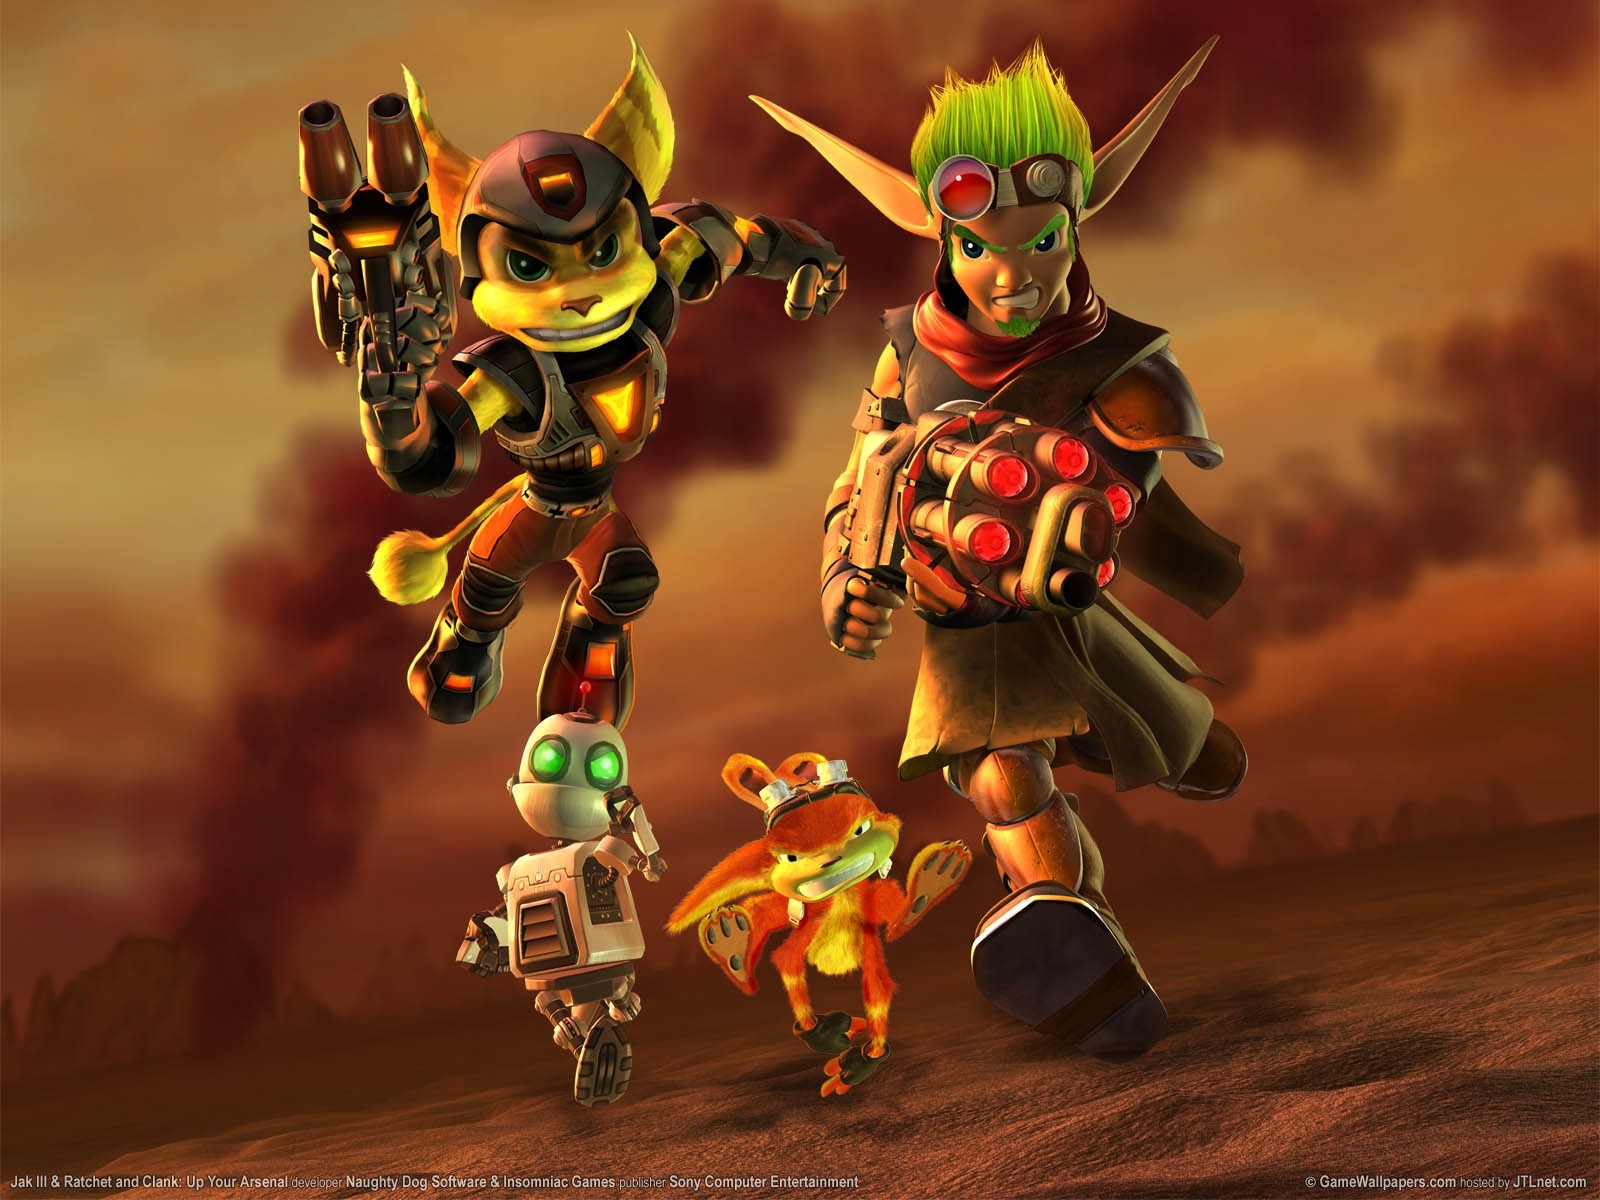 jak and daxter wallpapers - album on imgur